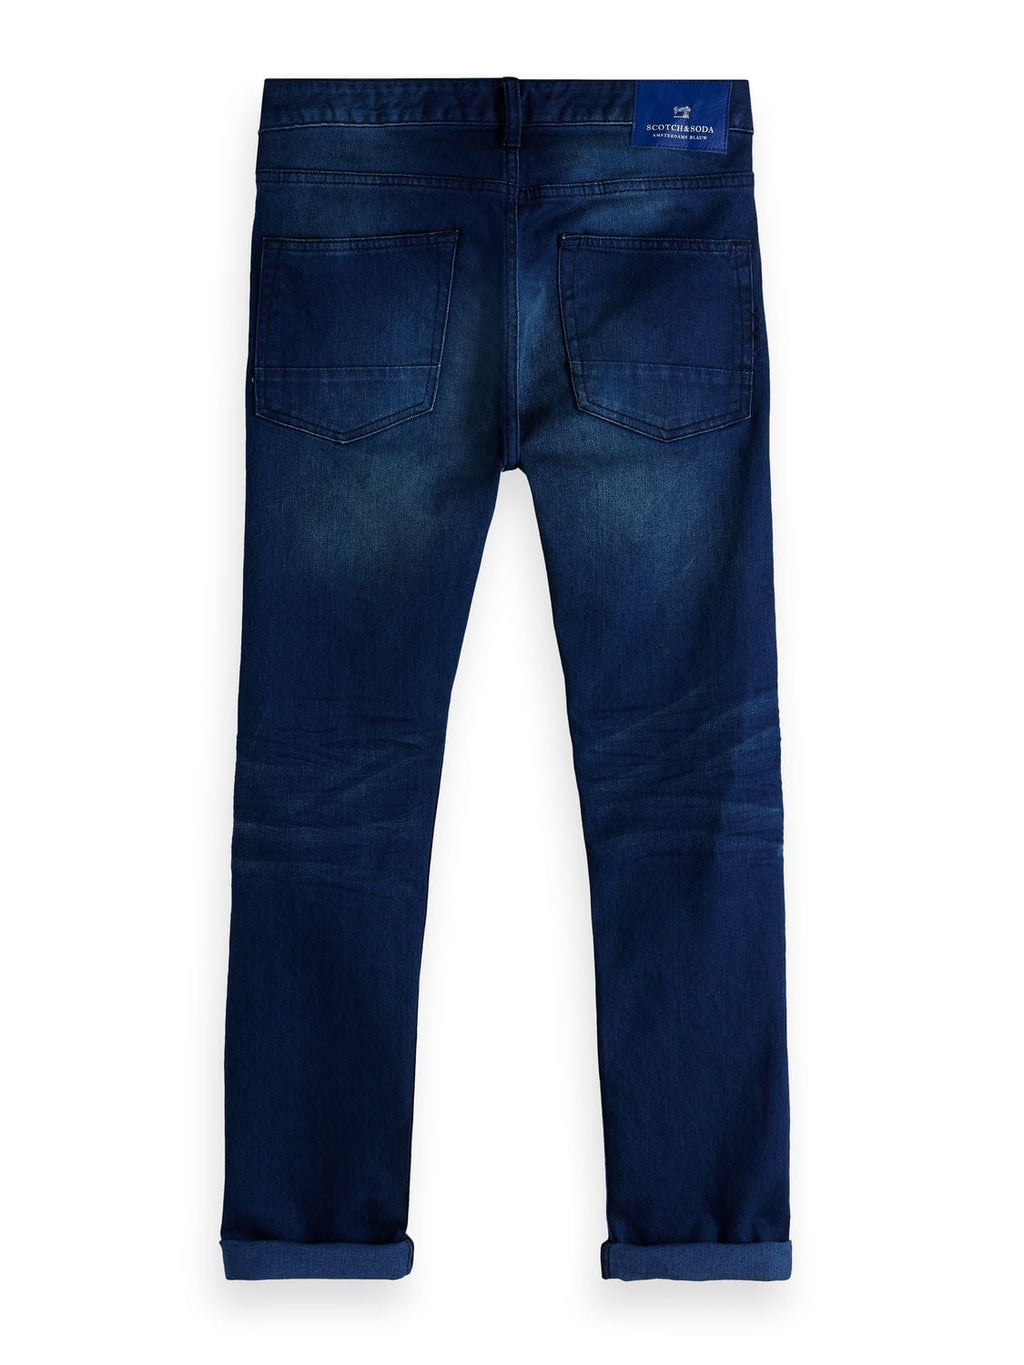 Scotch & Soda Ralston Jeans - Winter Spirit